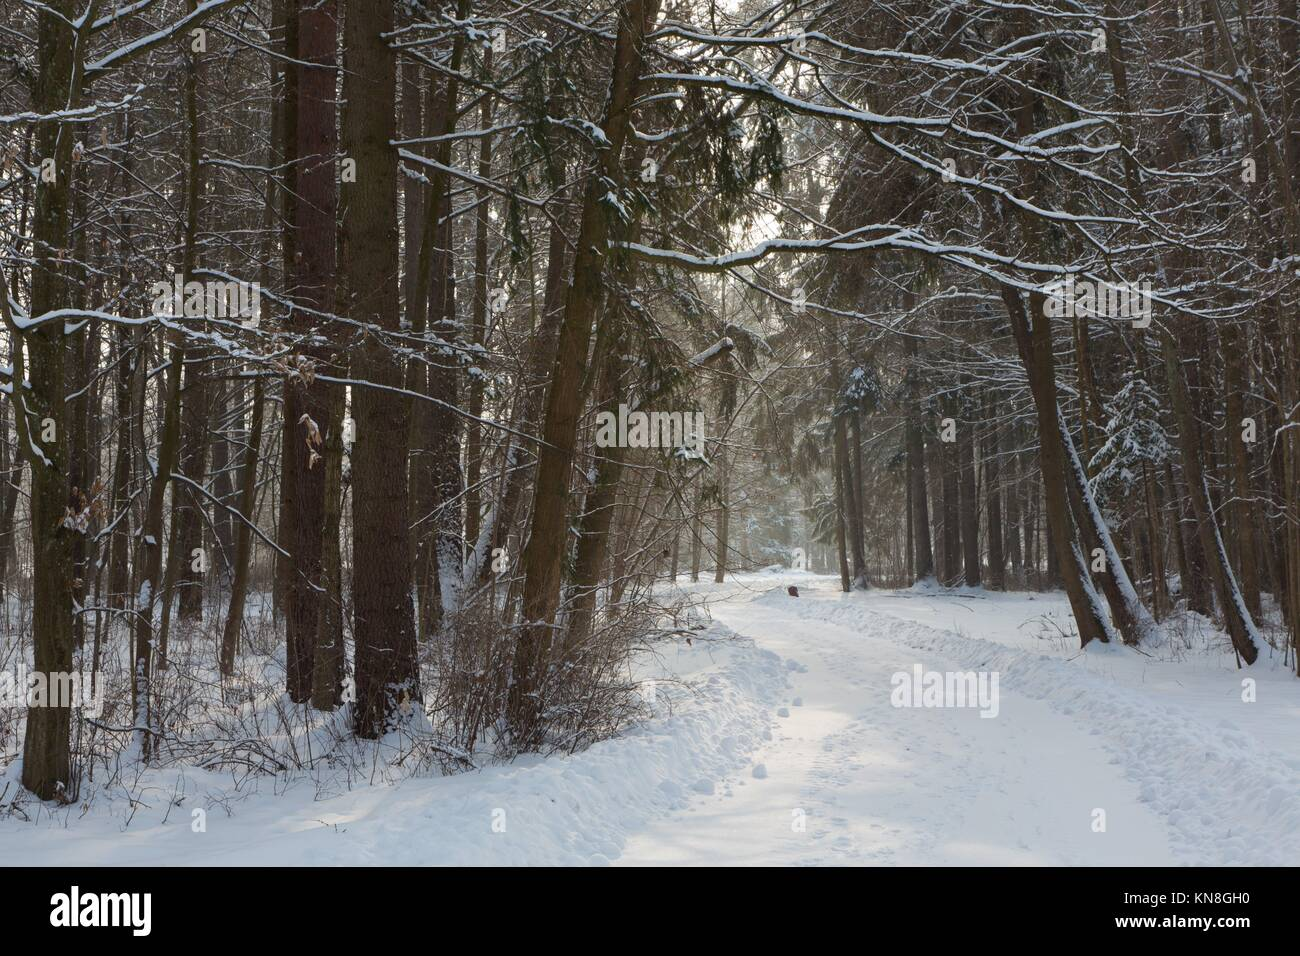 Snowy road between two spruces in winter Palace Park,Bialowieza,Poland,Europe. - Stock Image